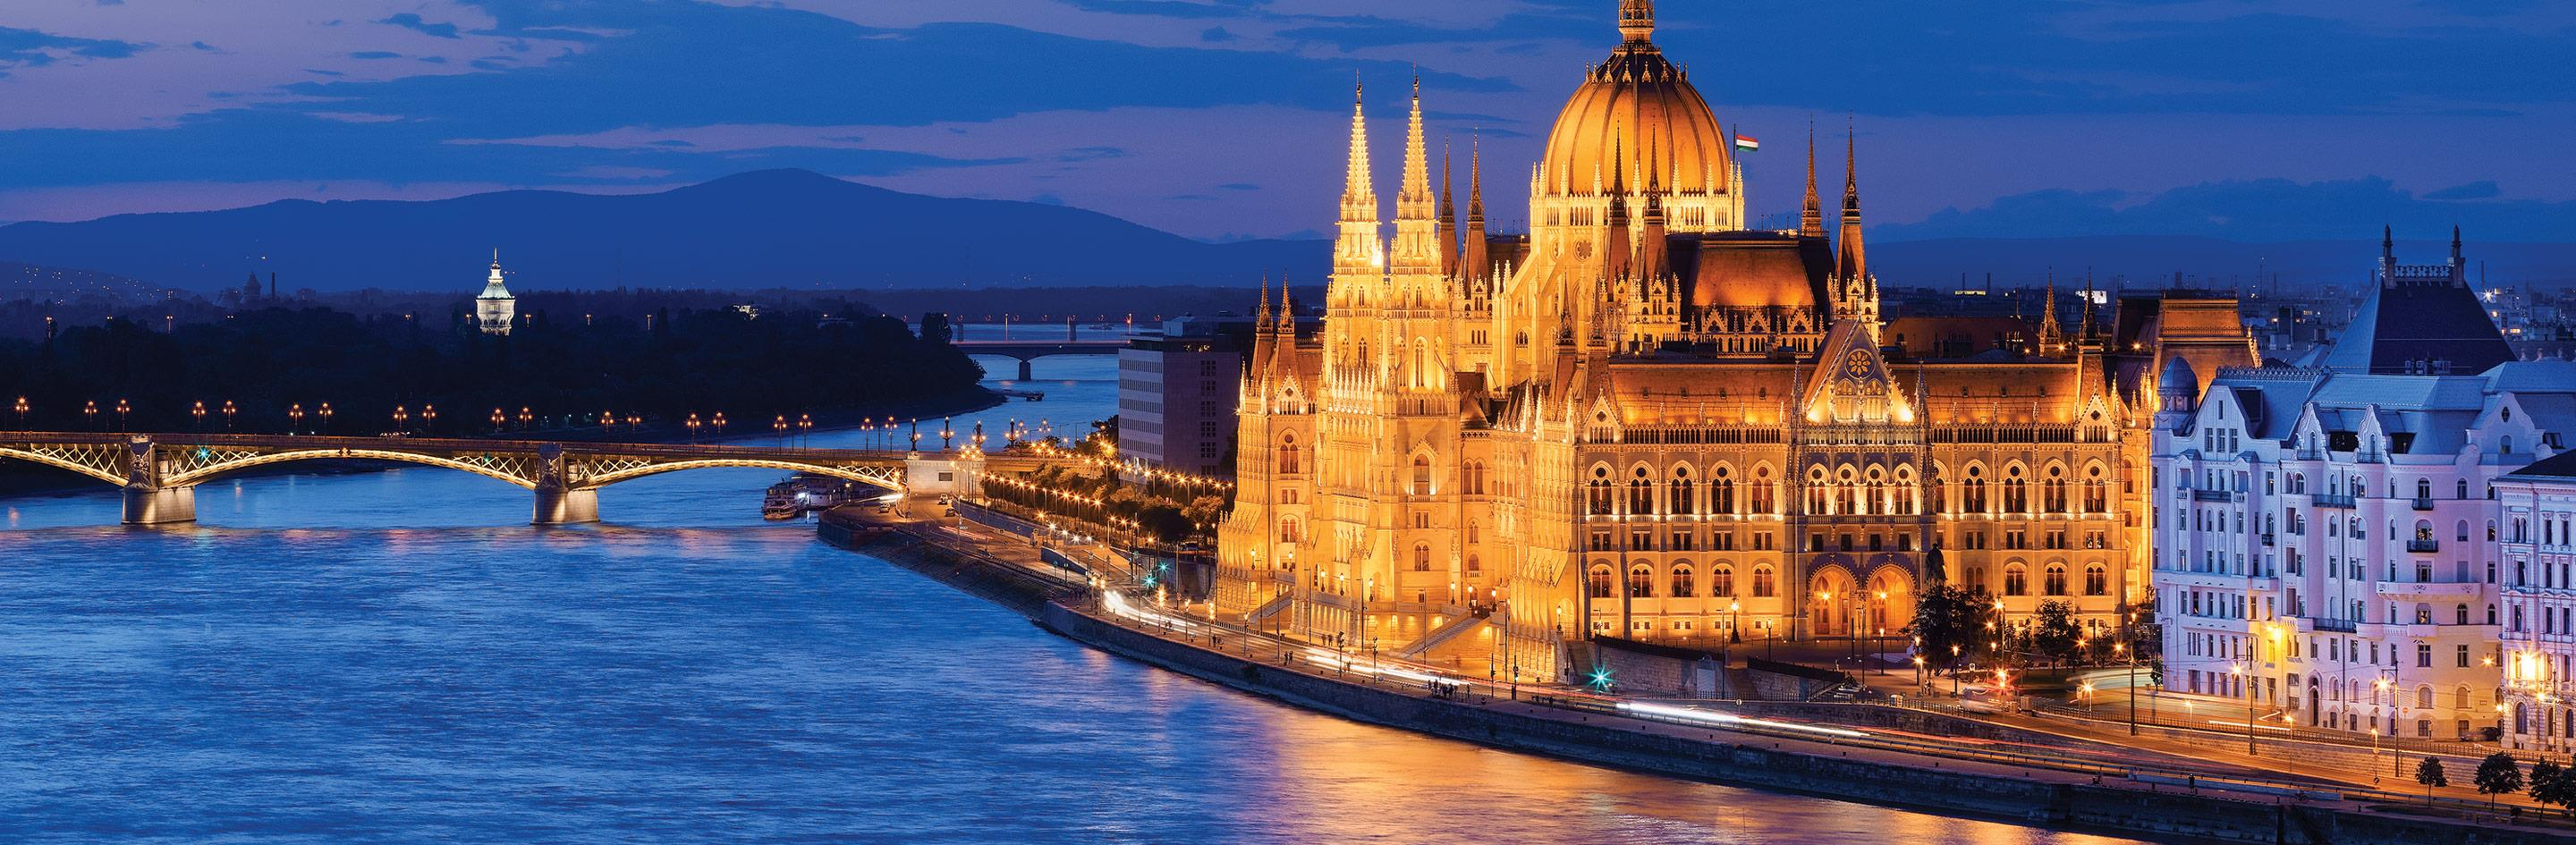 Meet The River Cruise Managers AmaWaterways - Waterway cruises